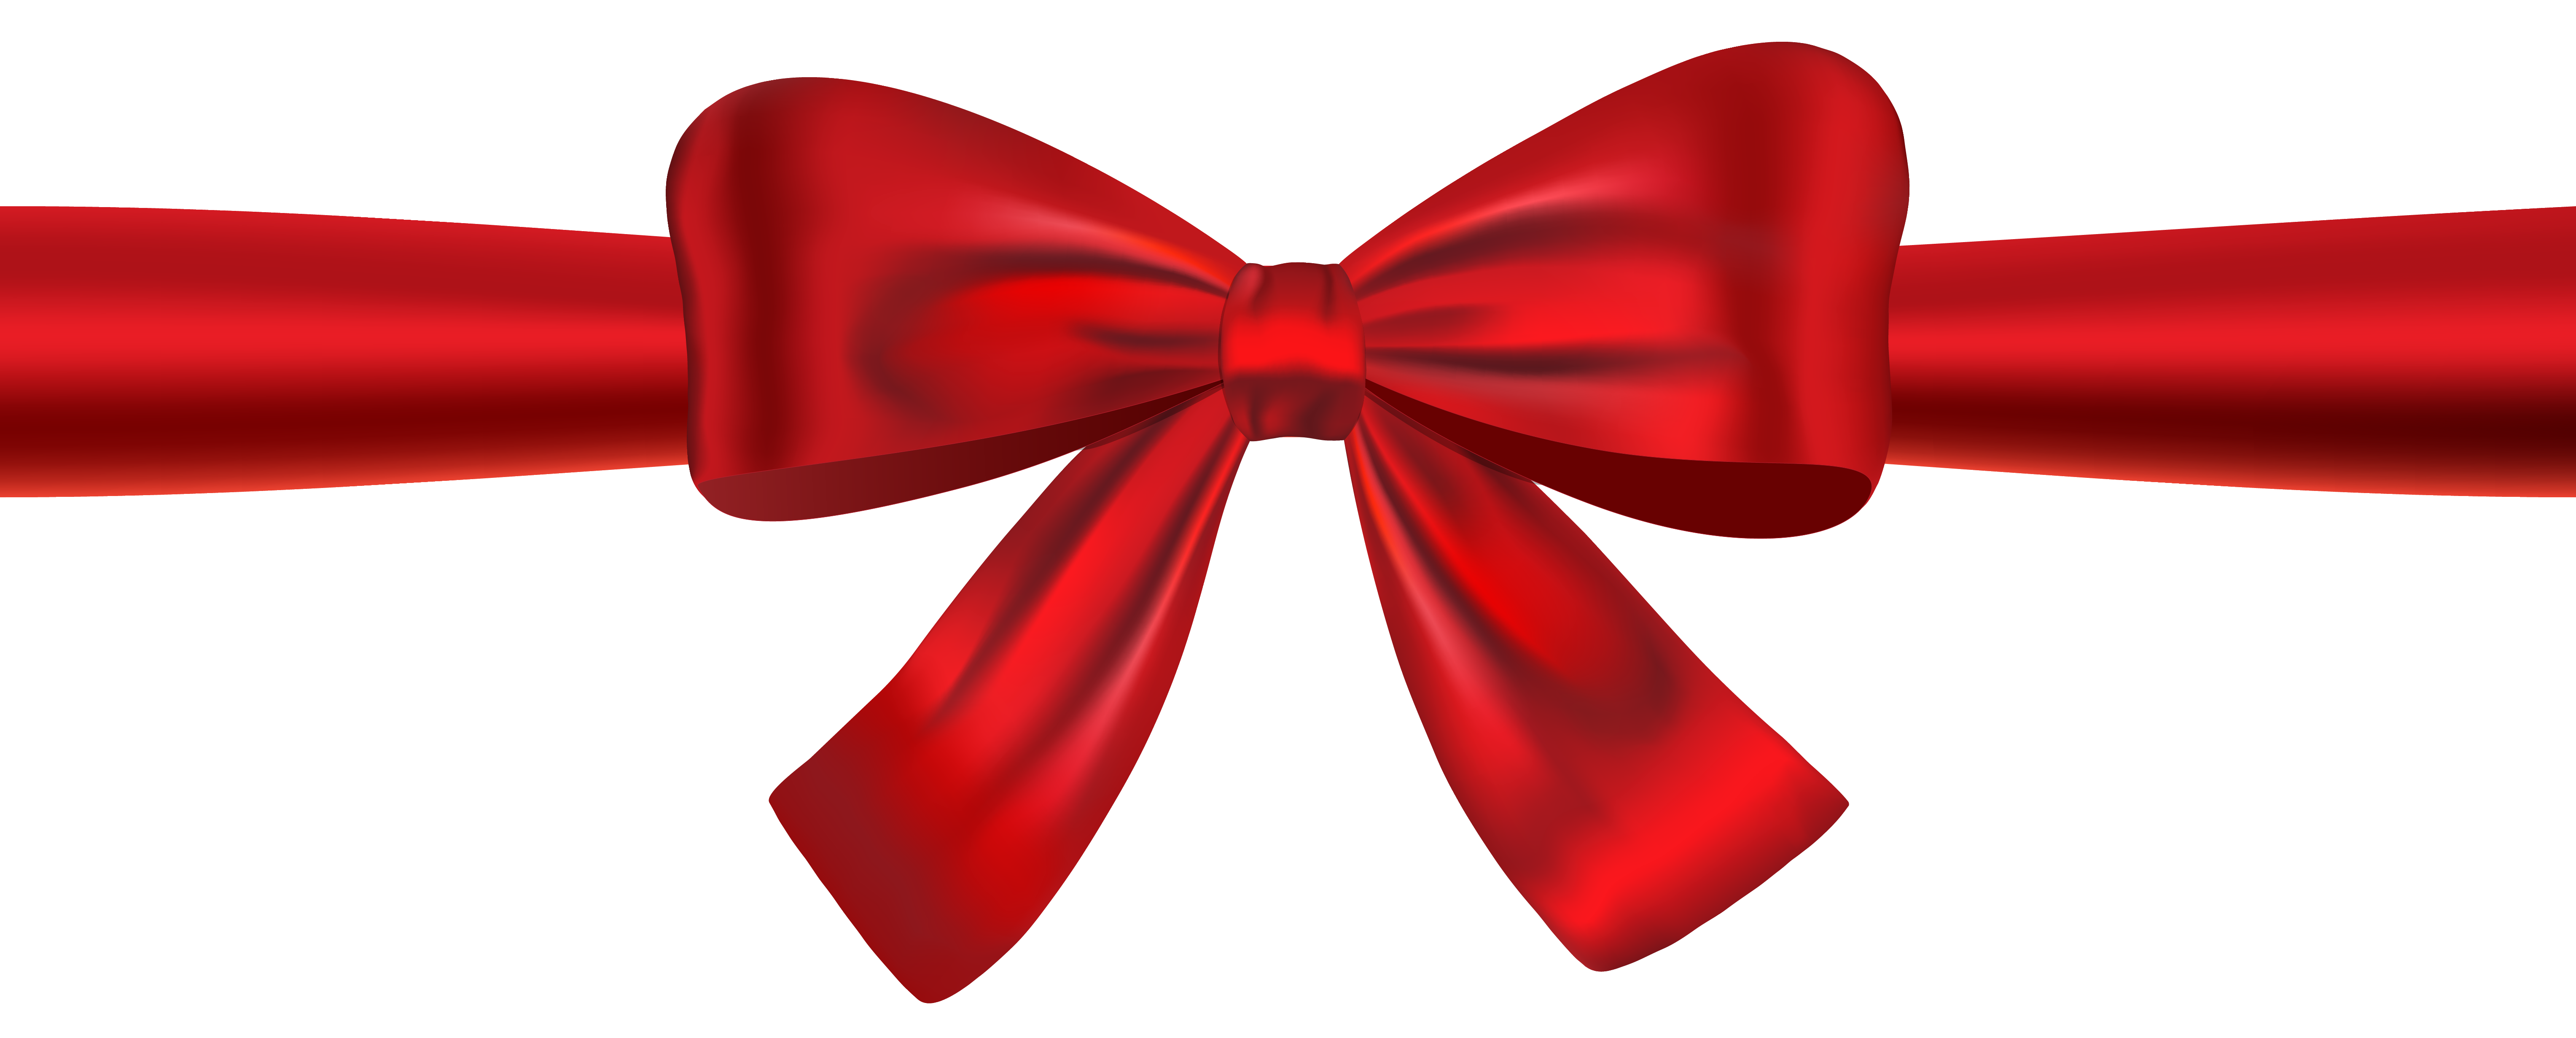 Red ribbon and bow clipart .